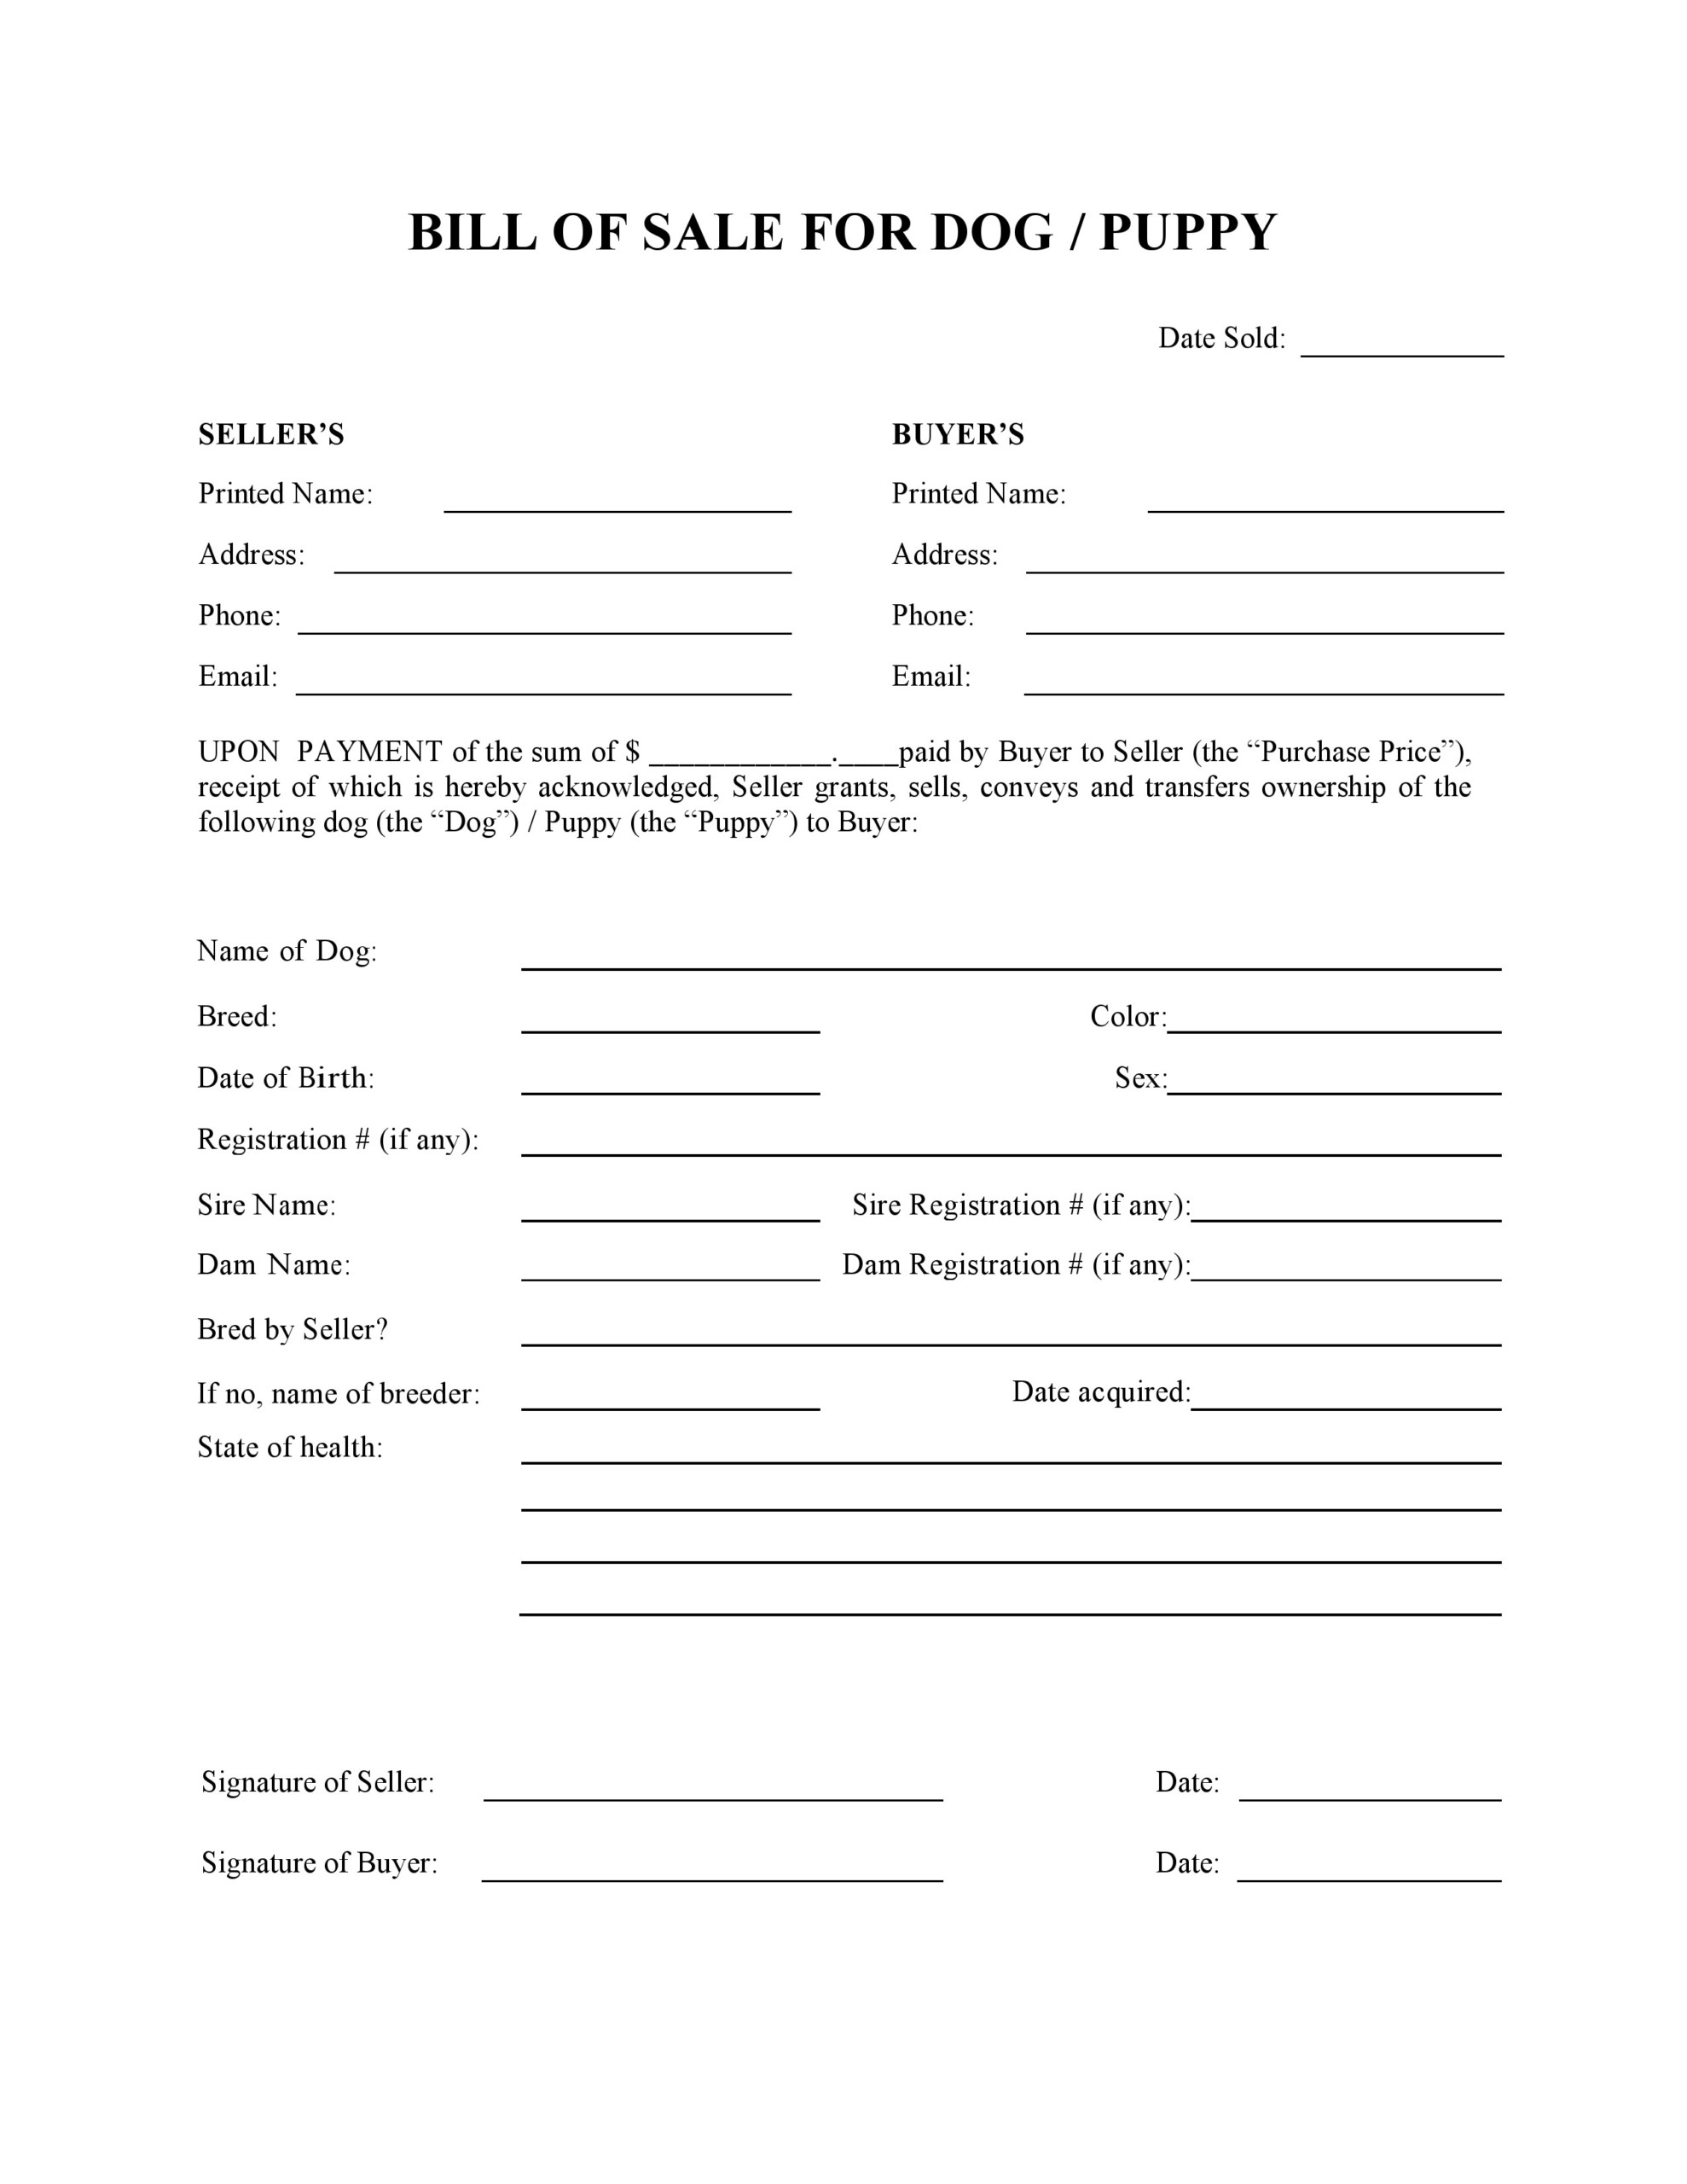 Free Dog Or Puppy Bill Of Sale Form PDF DOCX